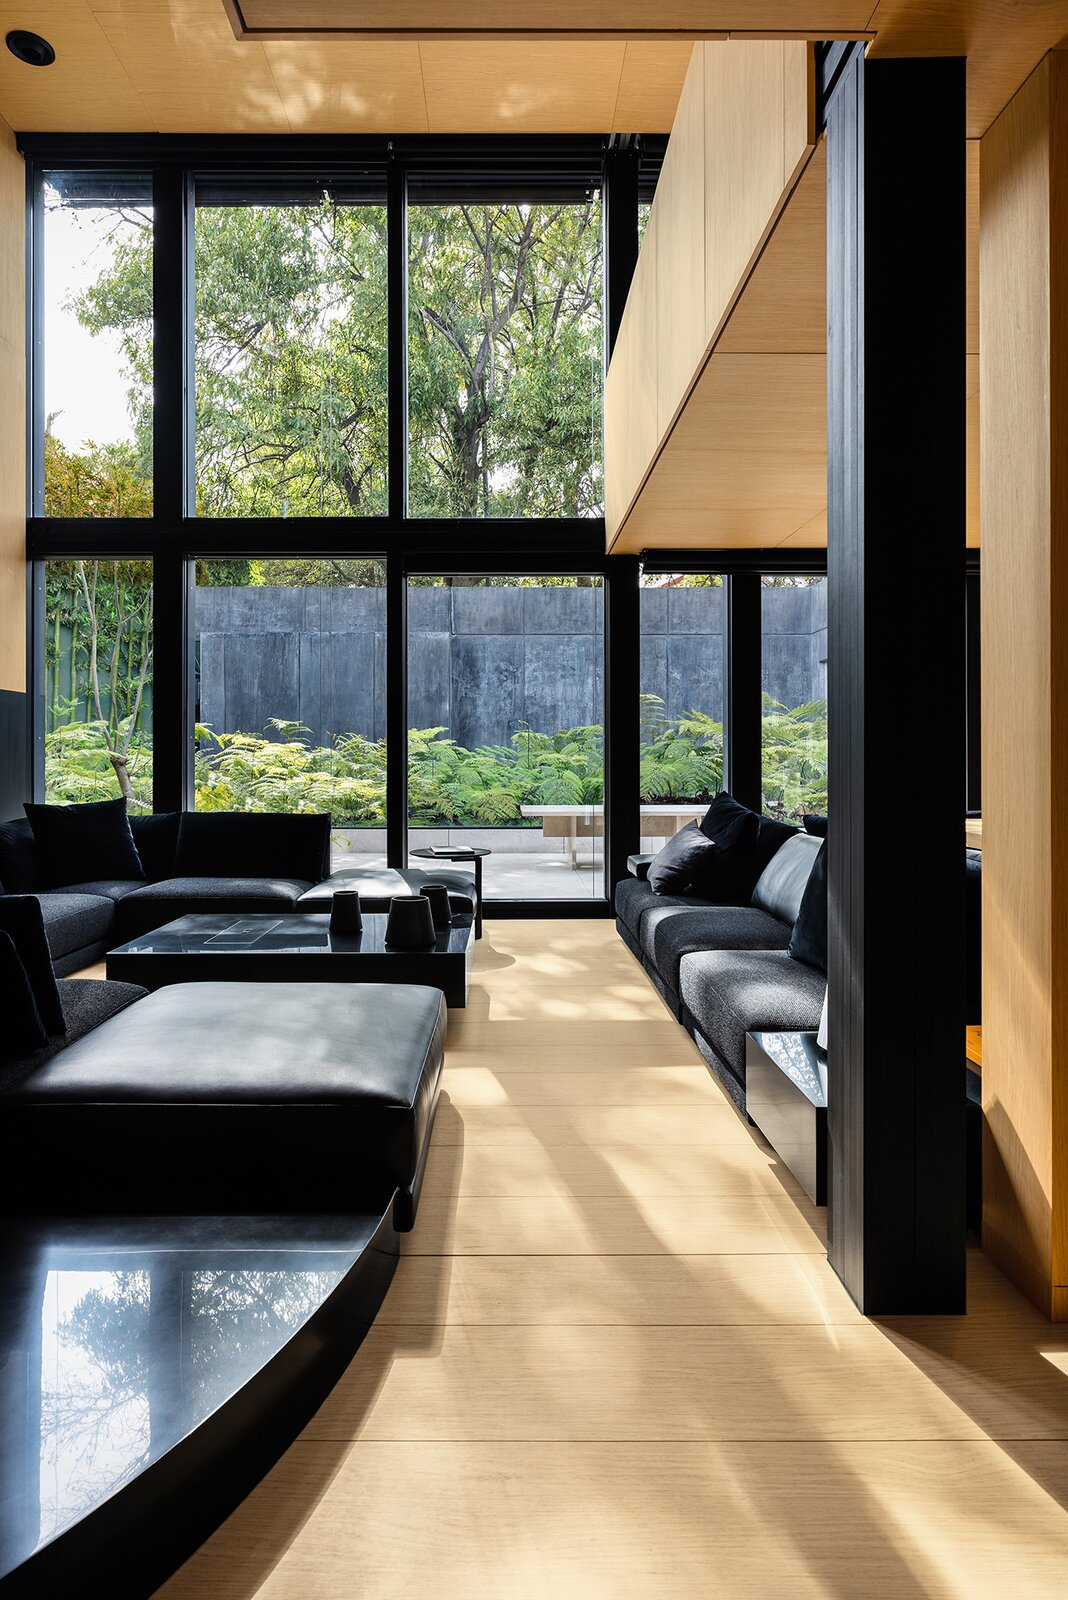 Living, Sectional, Ceiling, Coffee Tables, and Light Hardwood The homes come move-in ready, with appliances, furniture, and finishes chosen by the owner.  Dwell's Favorite Living Photos from A Trailblazing Aluminum Prefab Will Soon Woo U.S. Buyers